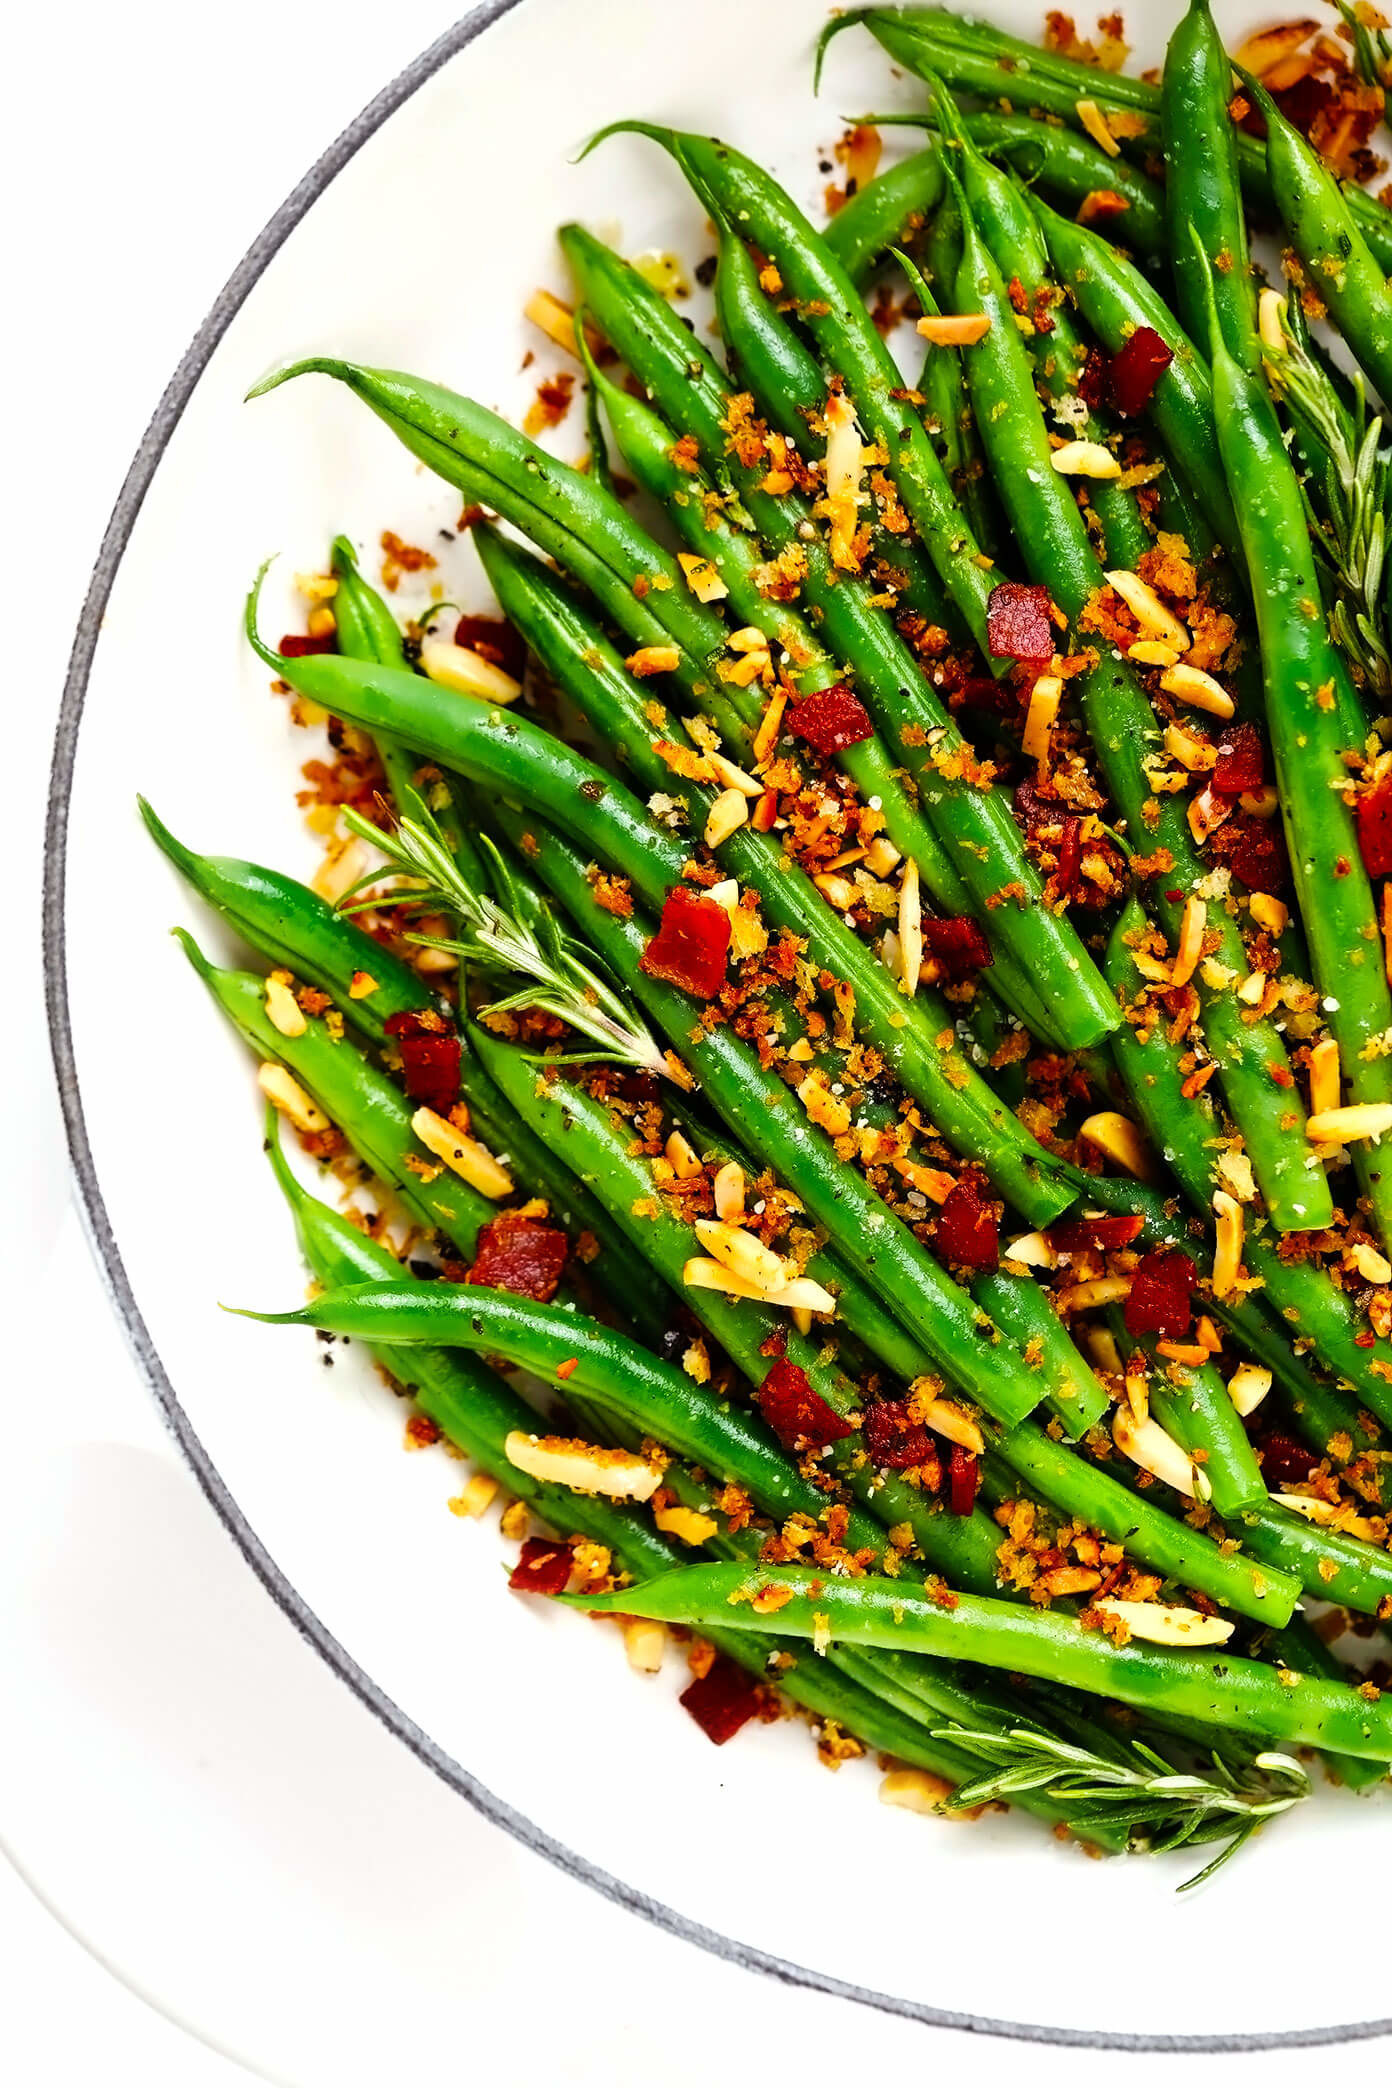 Green beans with bacon breadcrumbs